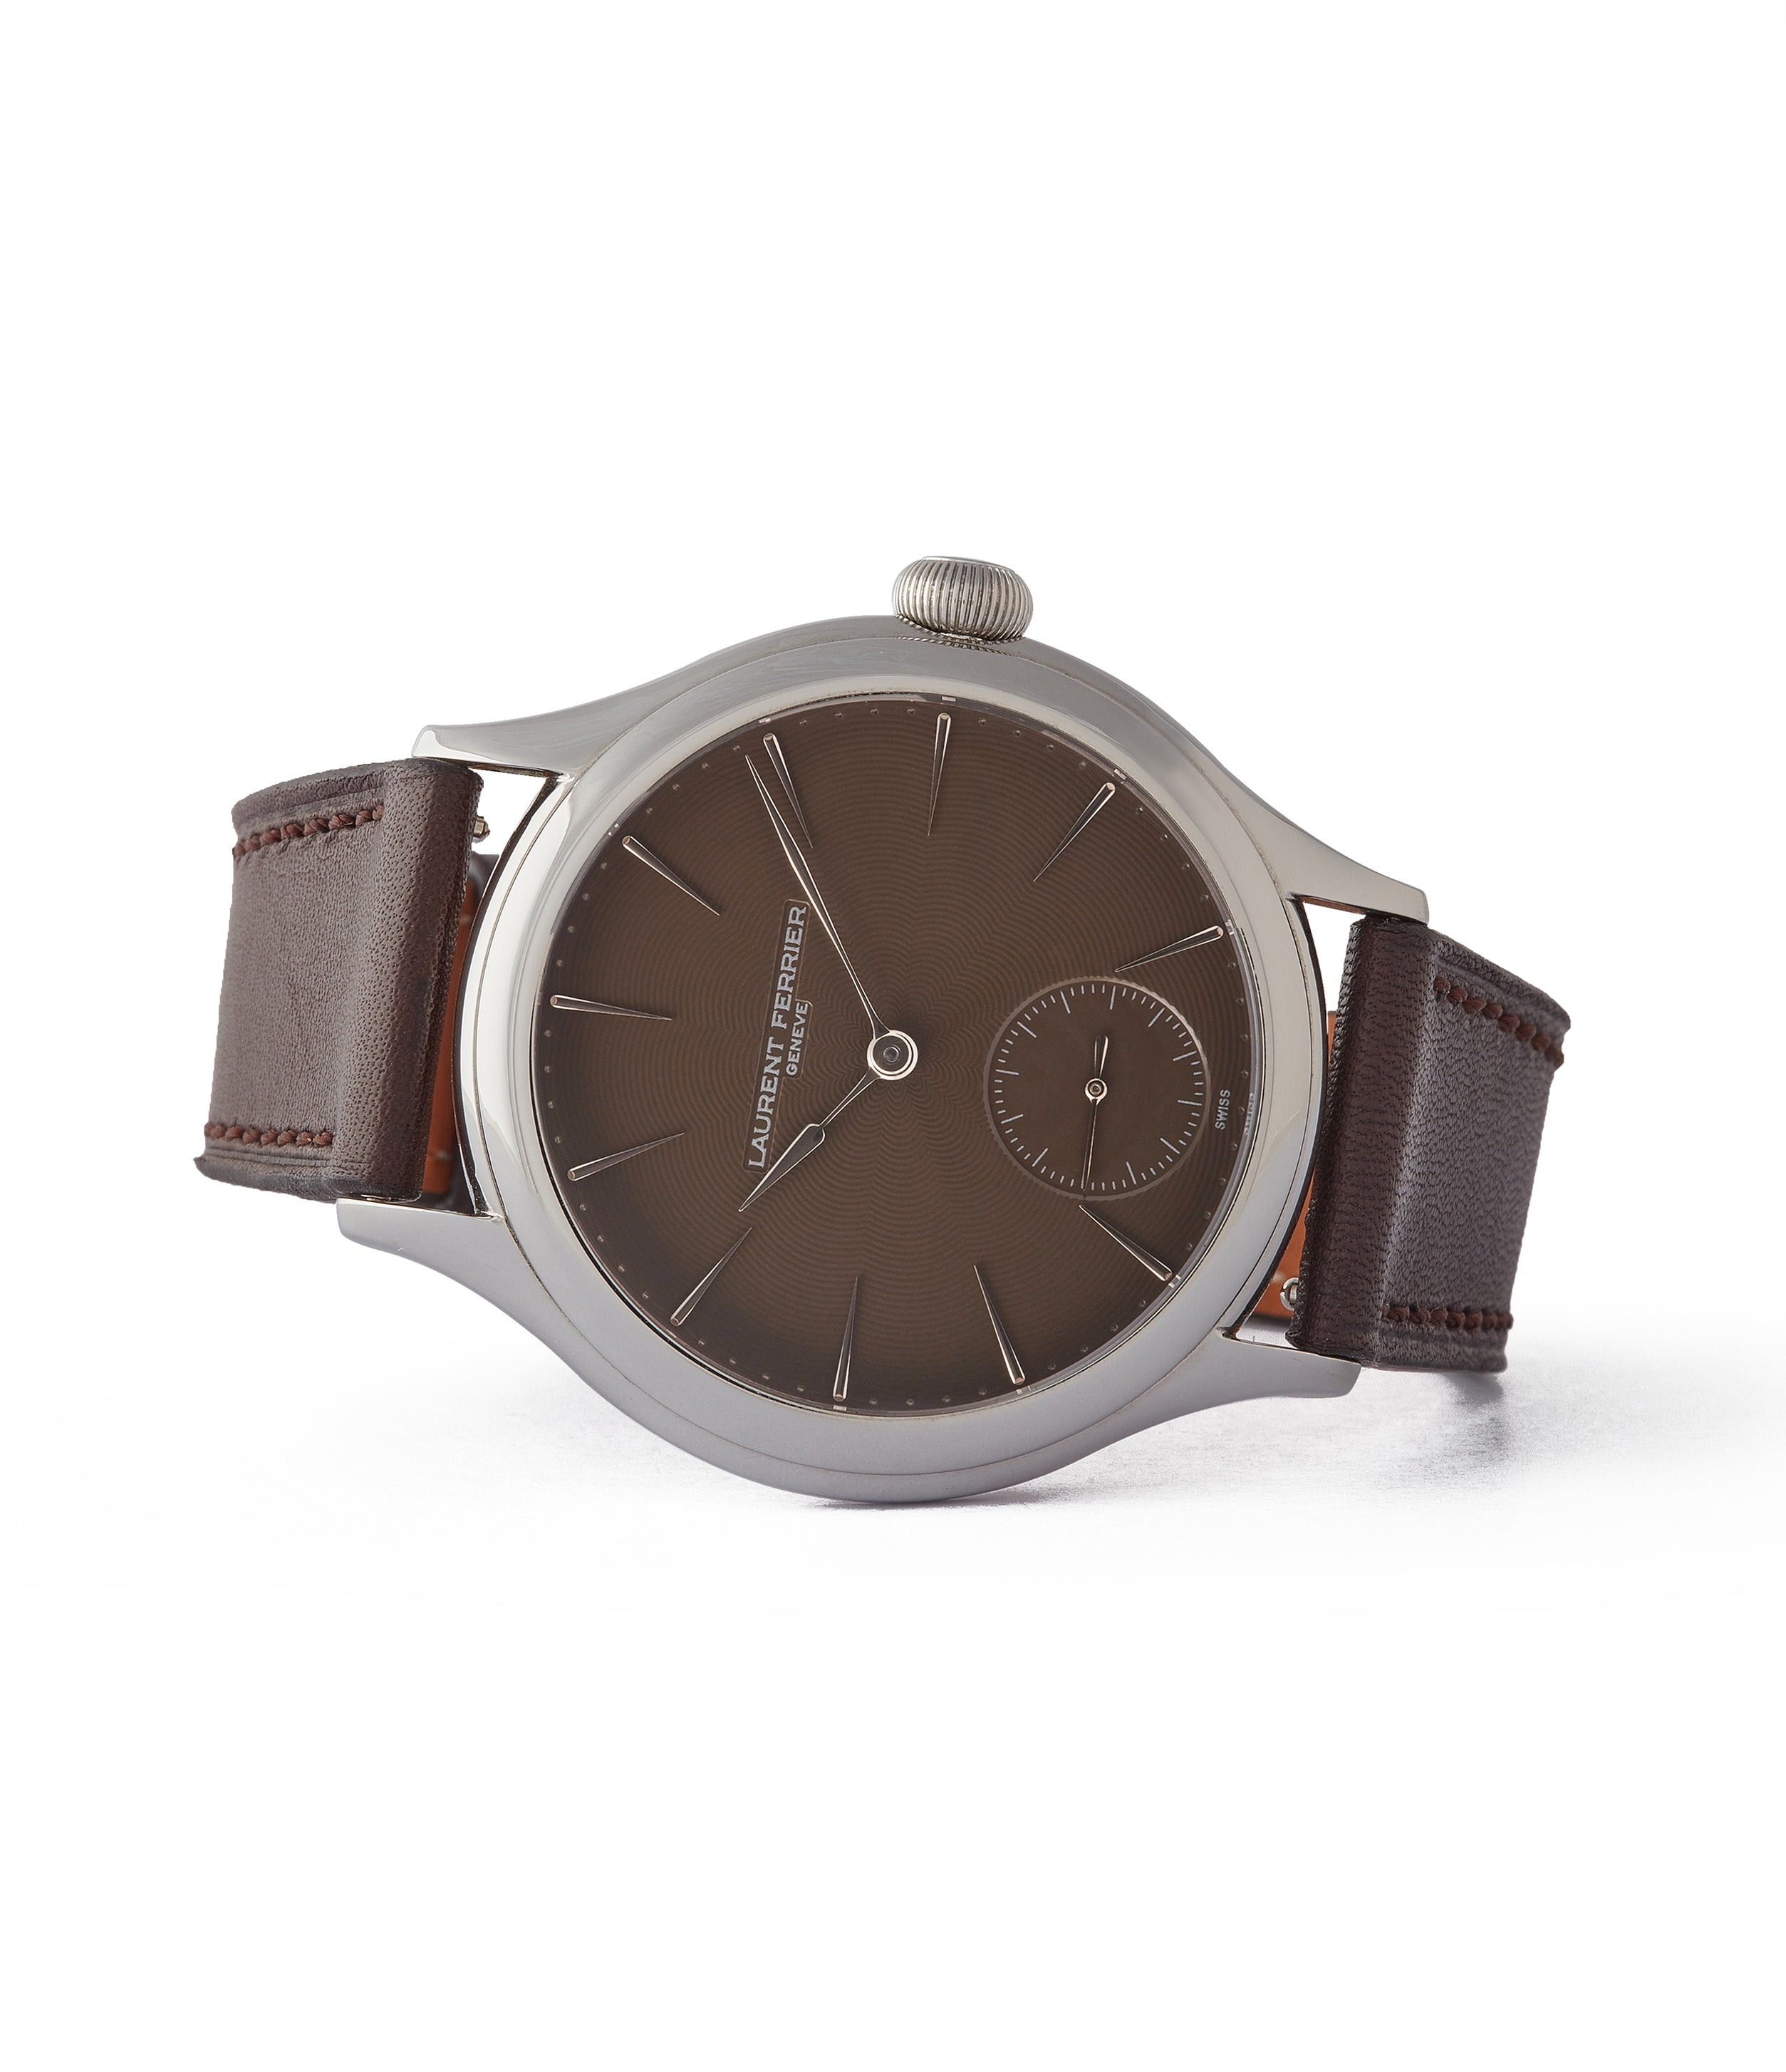 "side-shot prototoype Galet Laurent Ferrier Micro-rotor LF 229.01 ""Only Watch 2011"" steel watch brown dial for sale online at A Collected Man London UK approved seller of independent watchmakers"